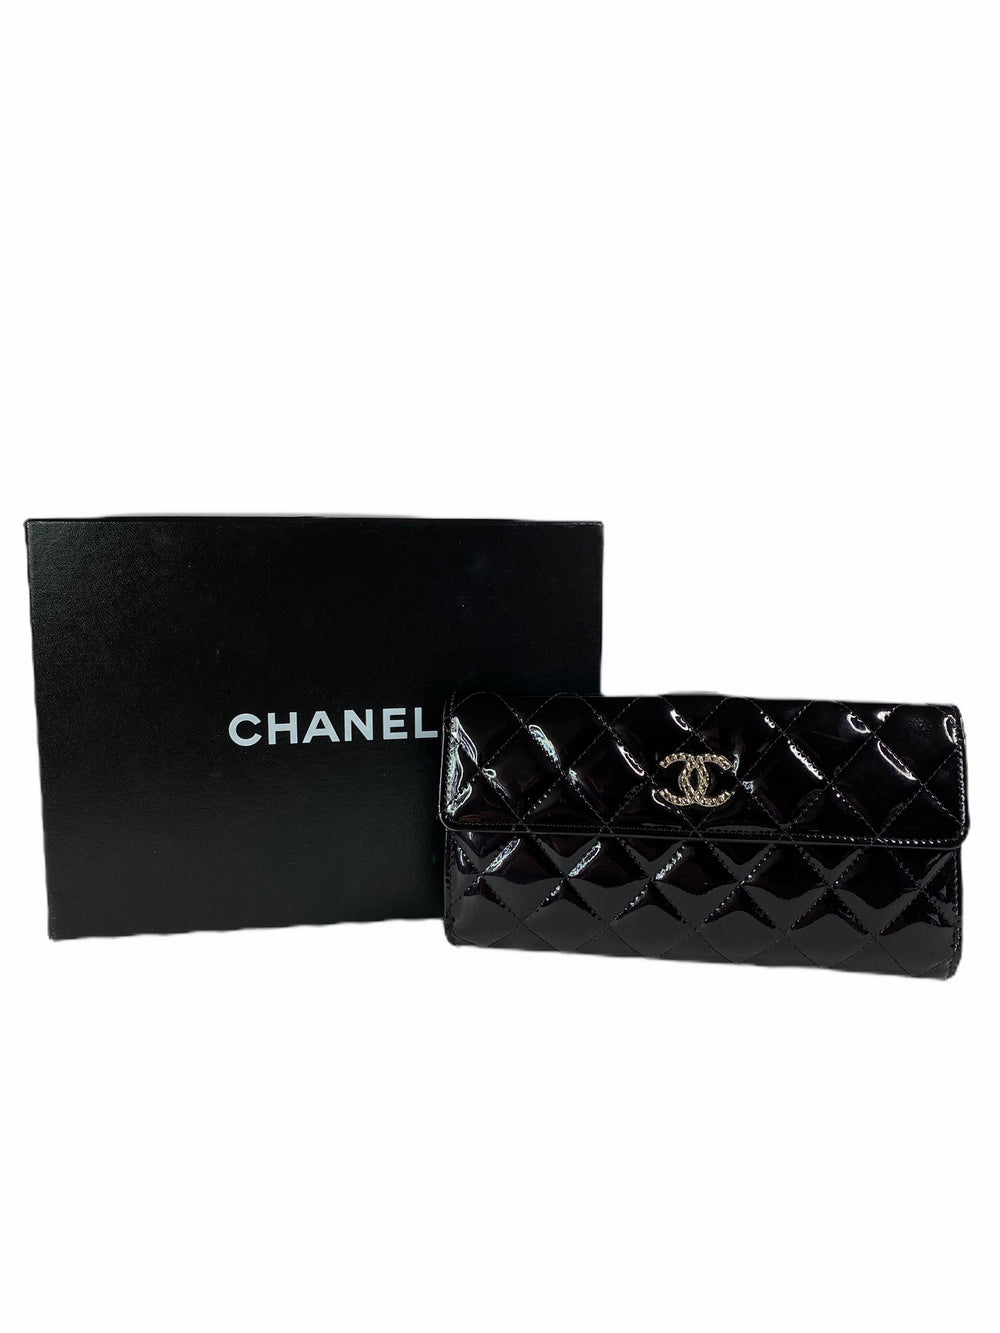 Chanel Black Patent Leather Purse